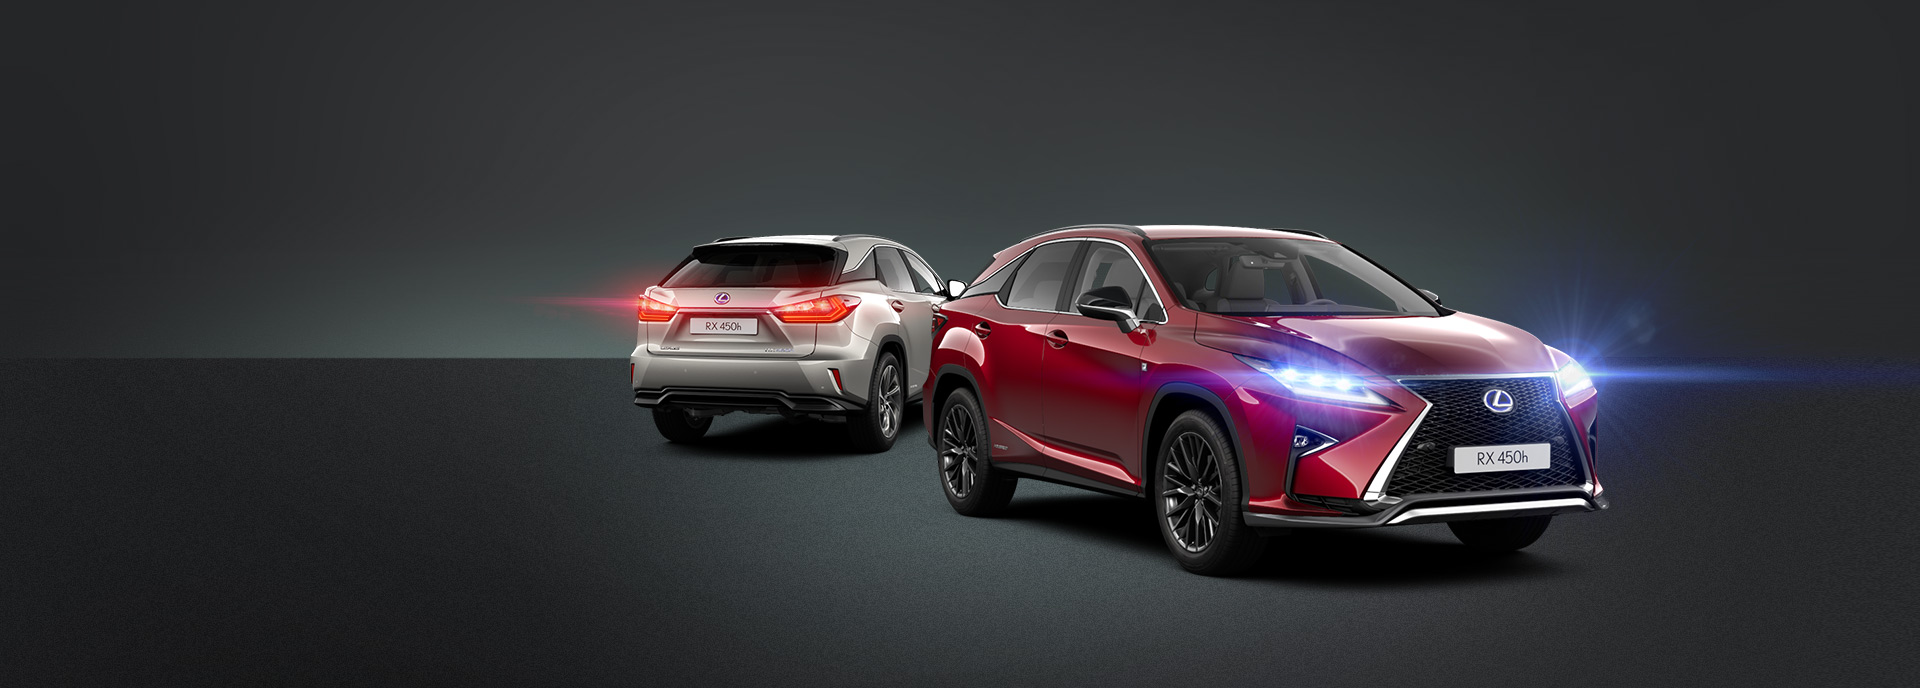 Lexus RX Hybrid Executive F Sport Luxury